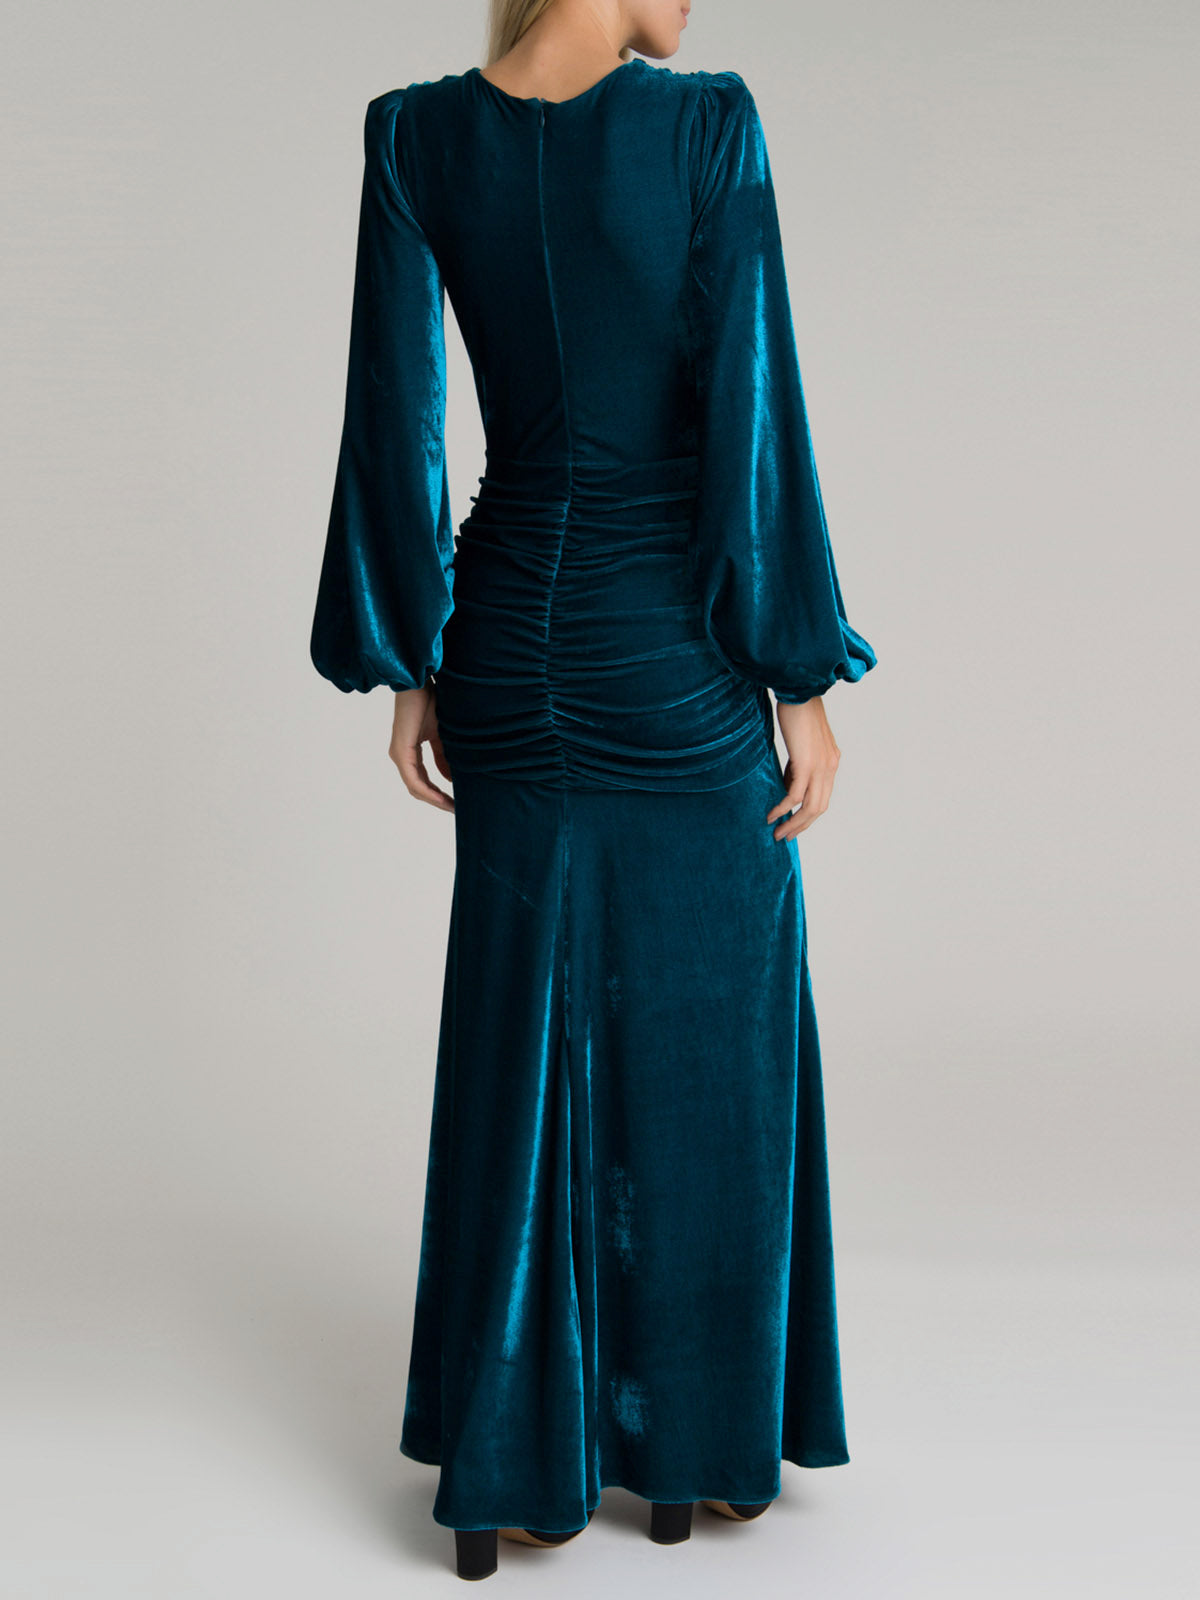 Velvet Long Sleeve Gown | Azure Velvet Long Sleeve Gown | Azure